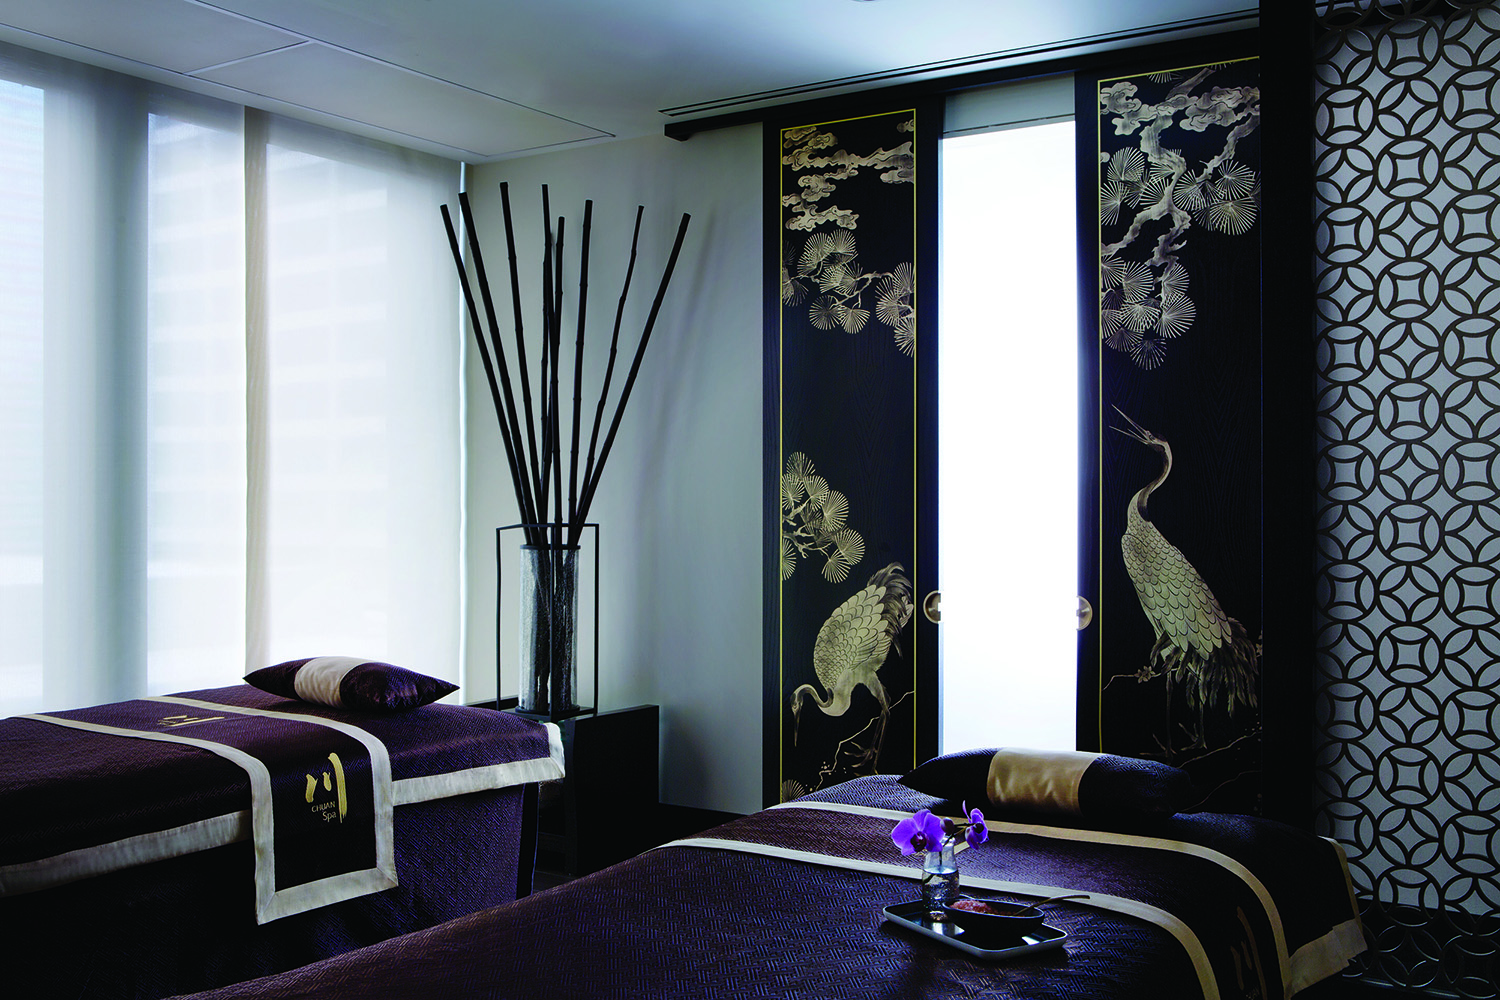 A couples treatment room at the Spa.